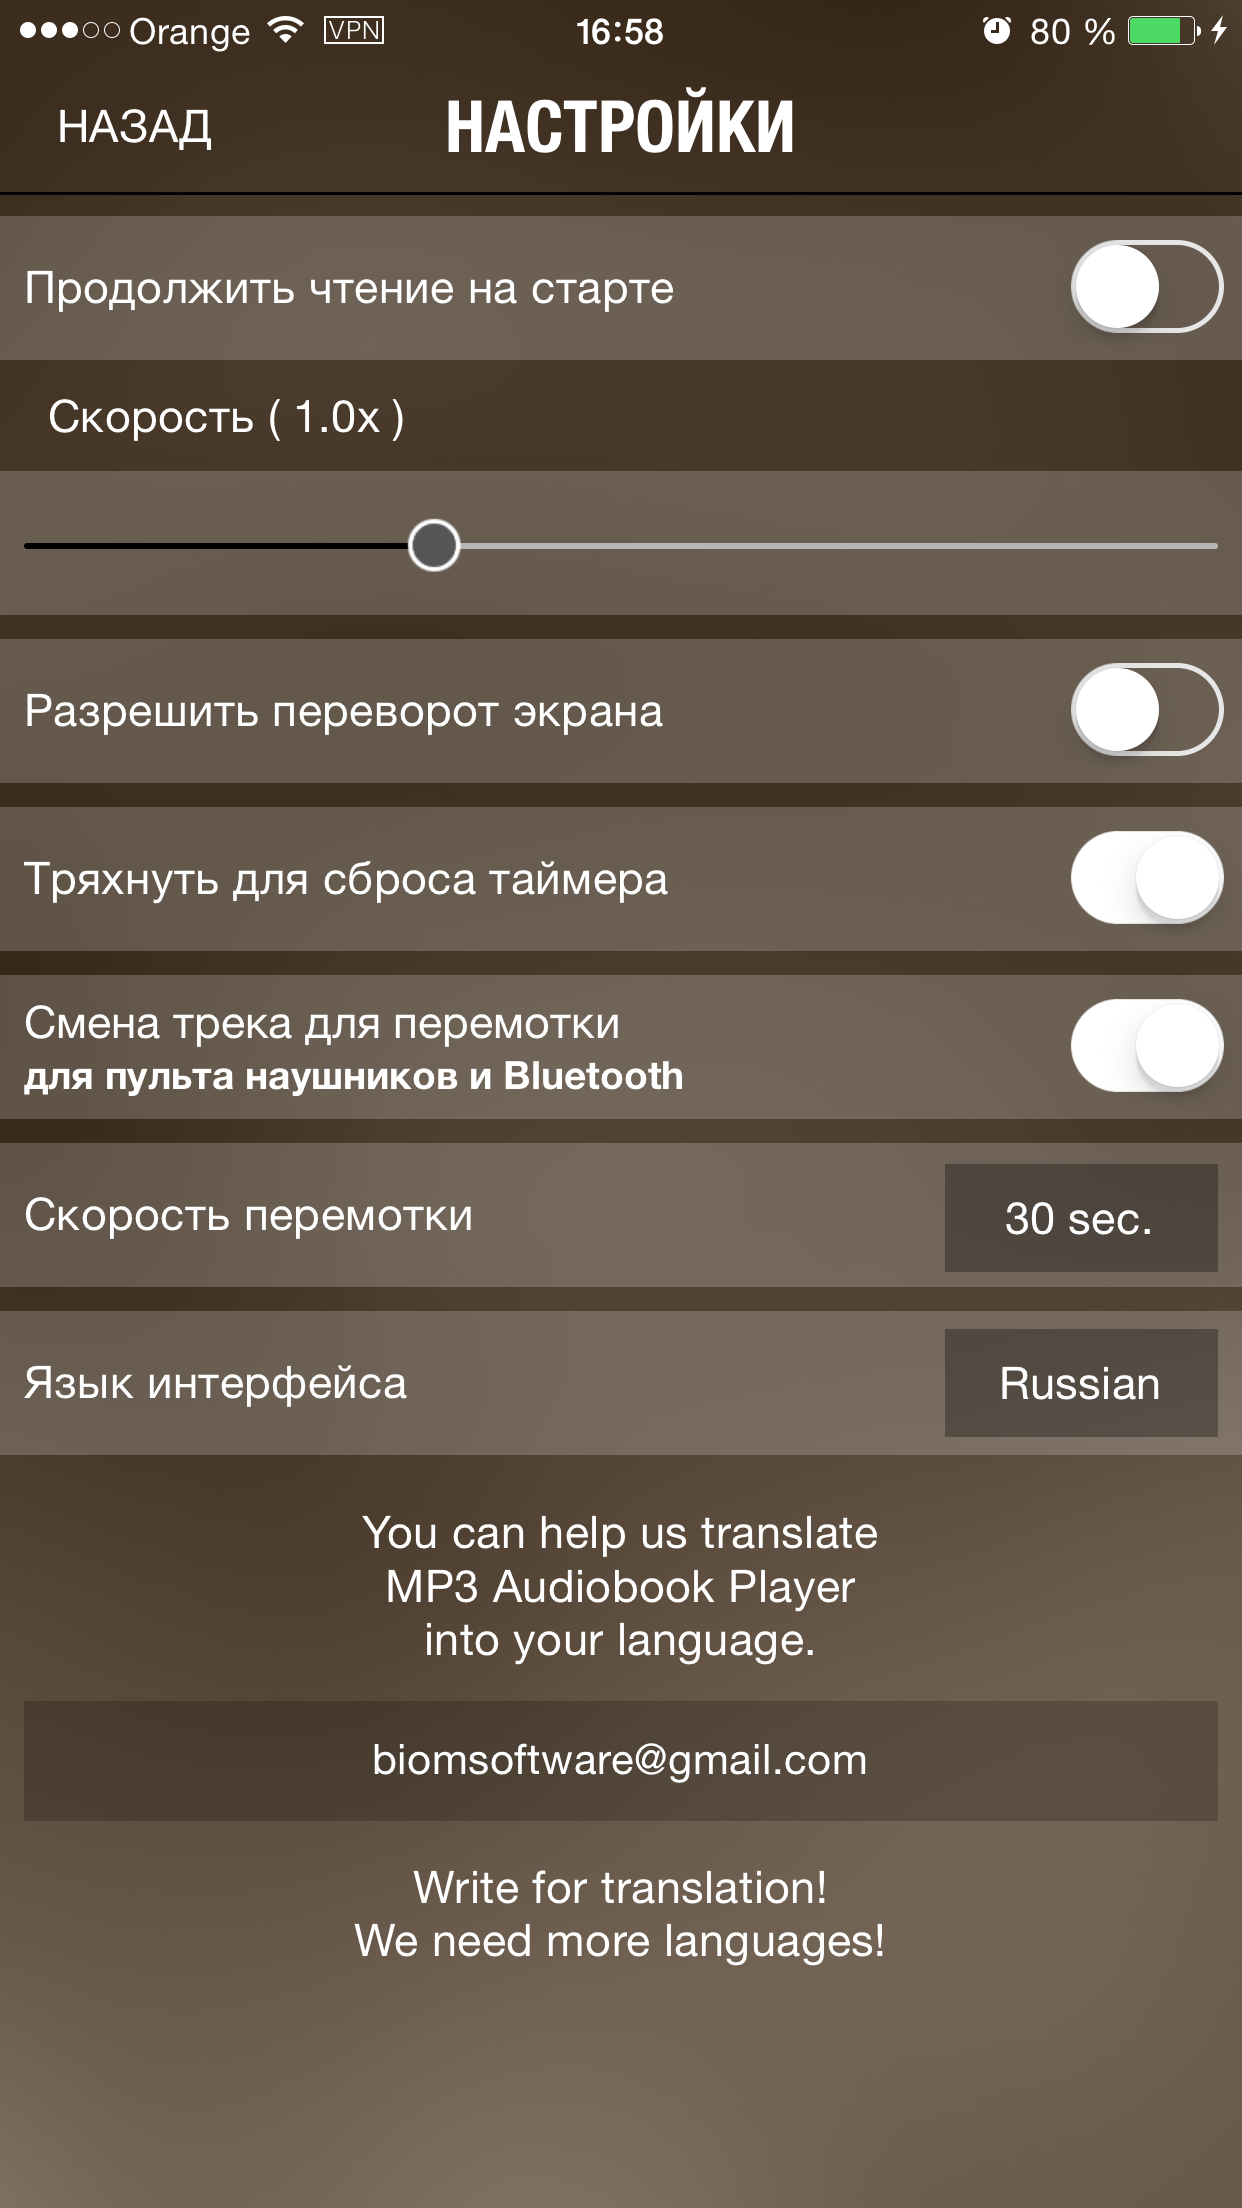 MP3 Audiobook Player